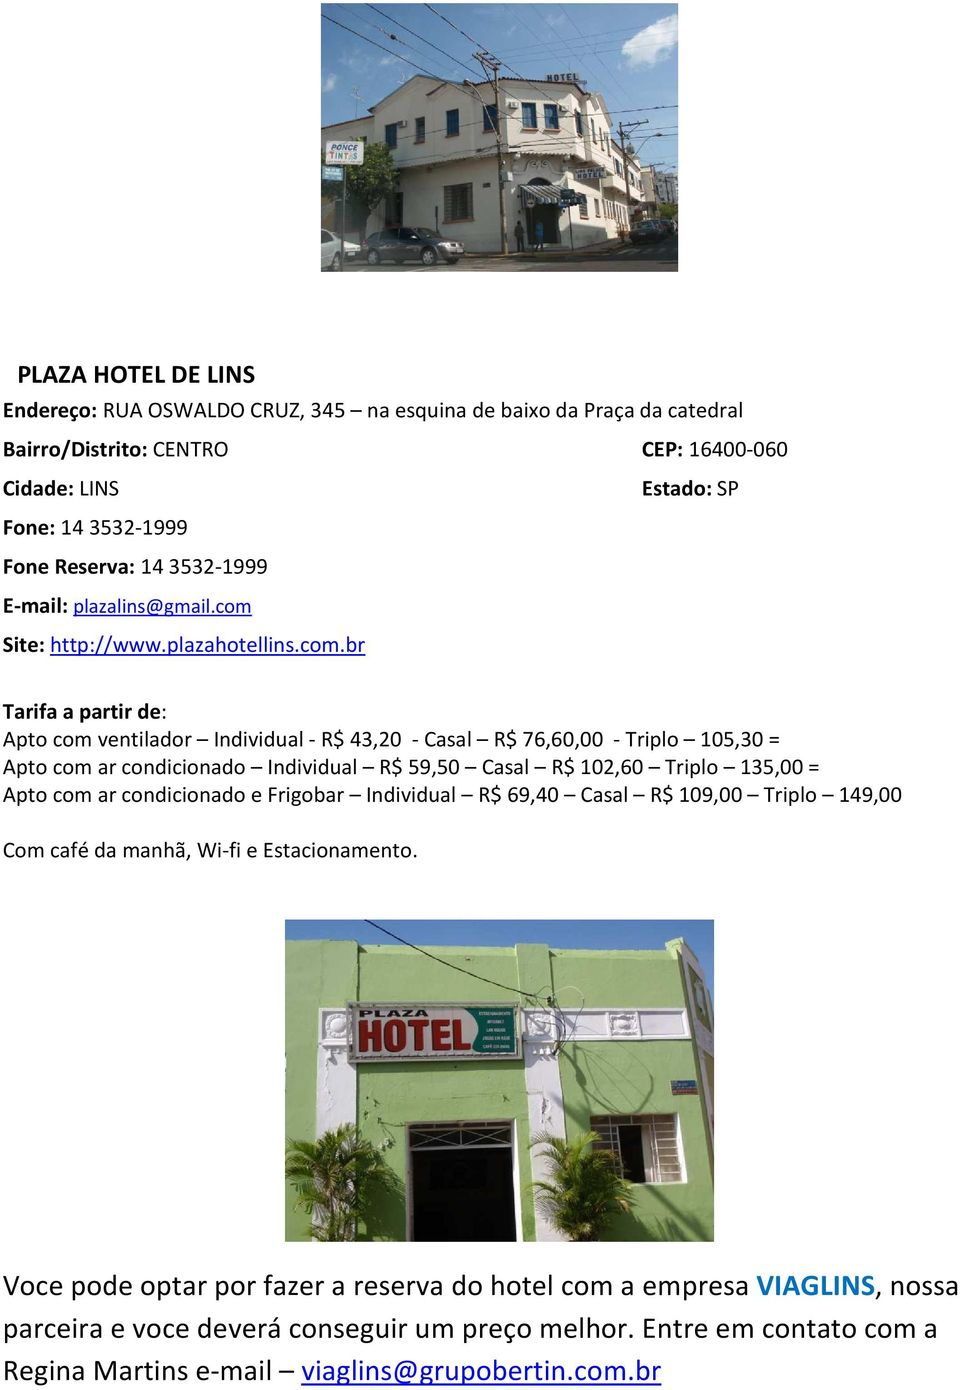 Site: http://www.plazahotellins.com.